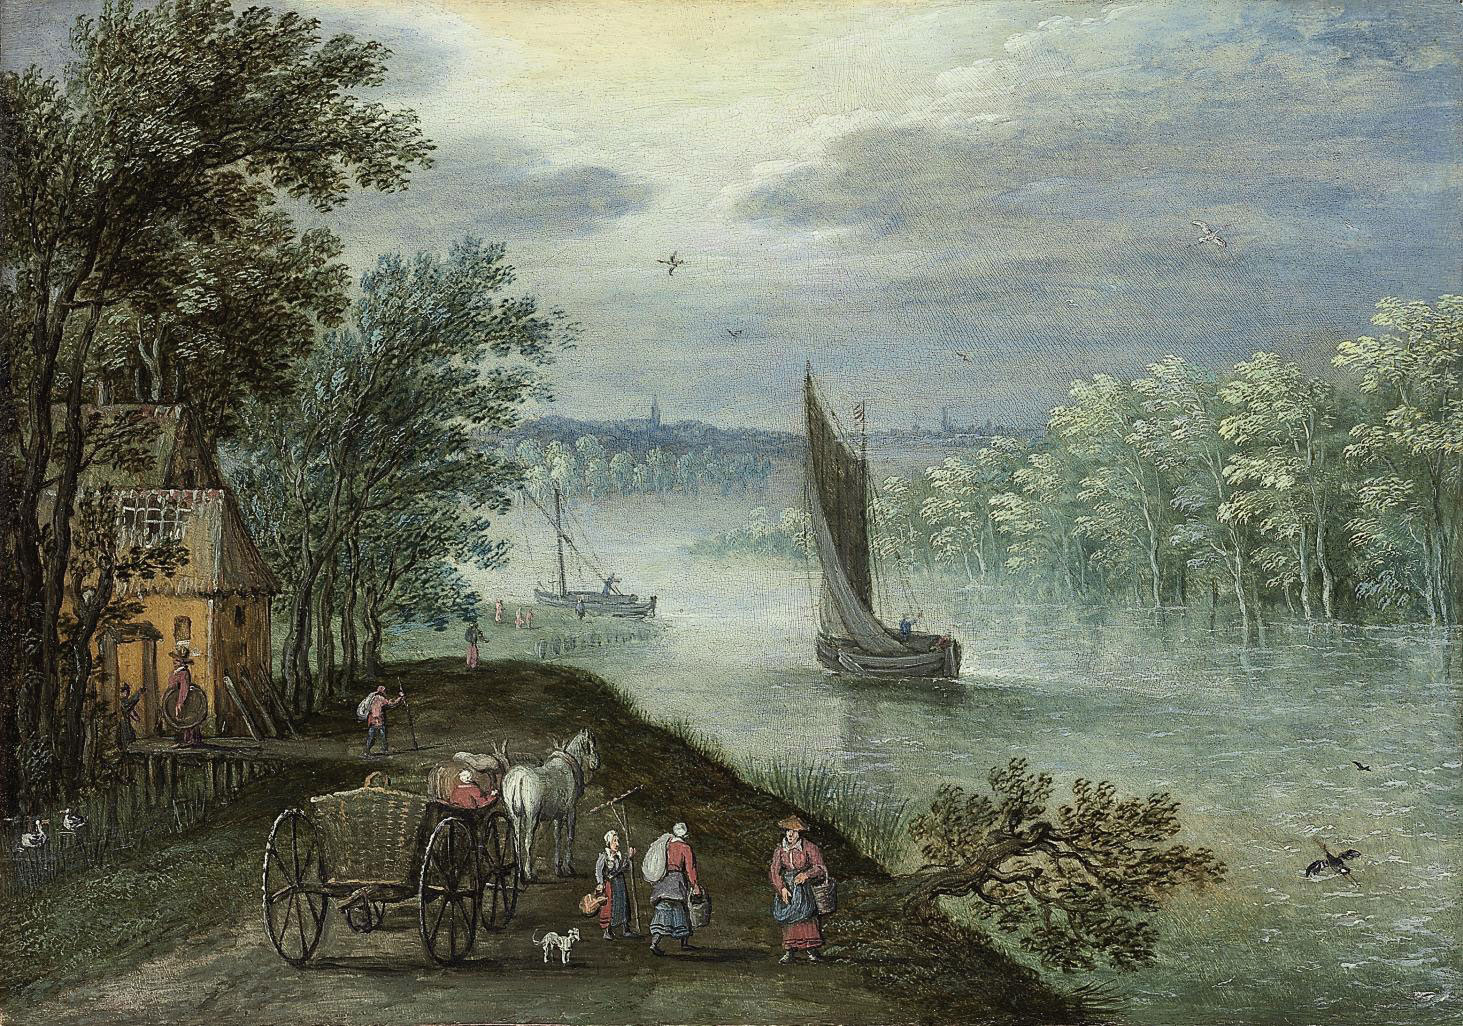 A wooded, river landscape with a sailing boat, figures with a horse and cart on a track in the foreground